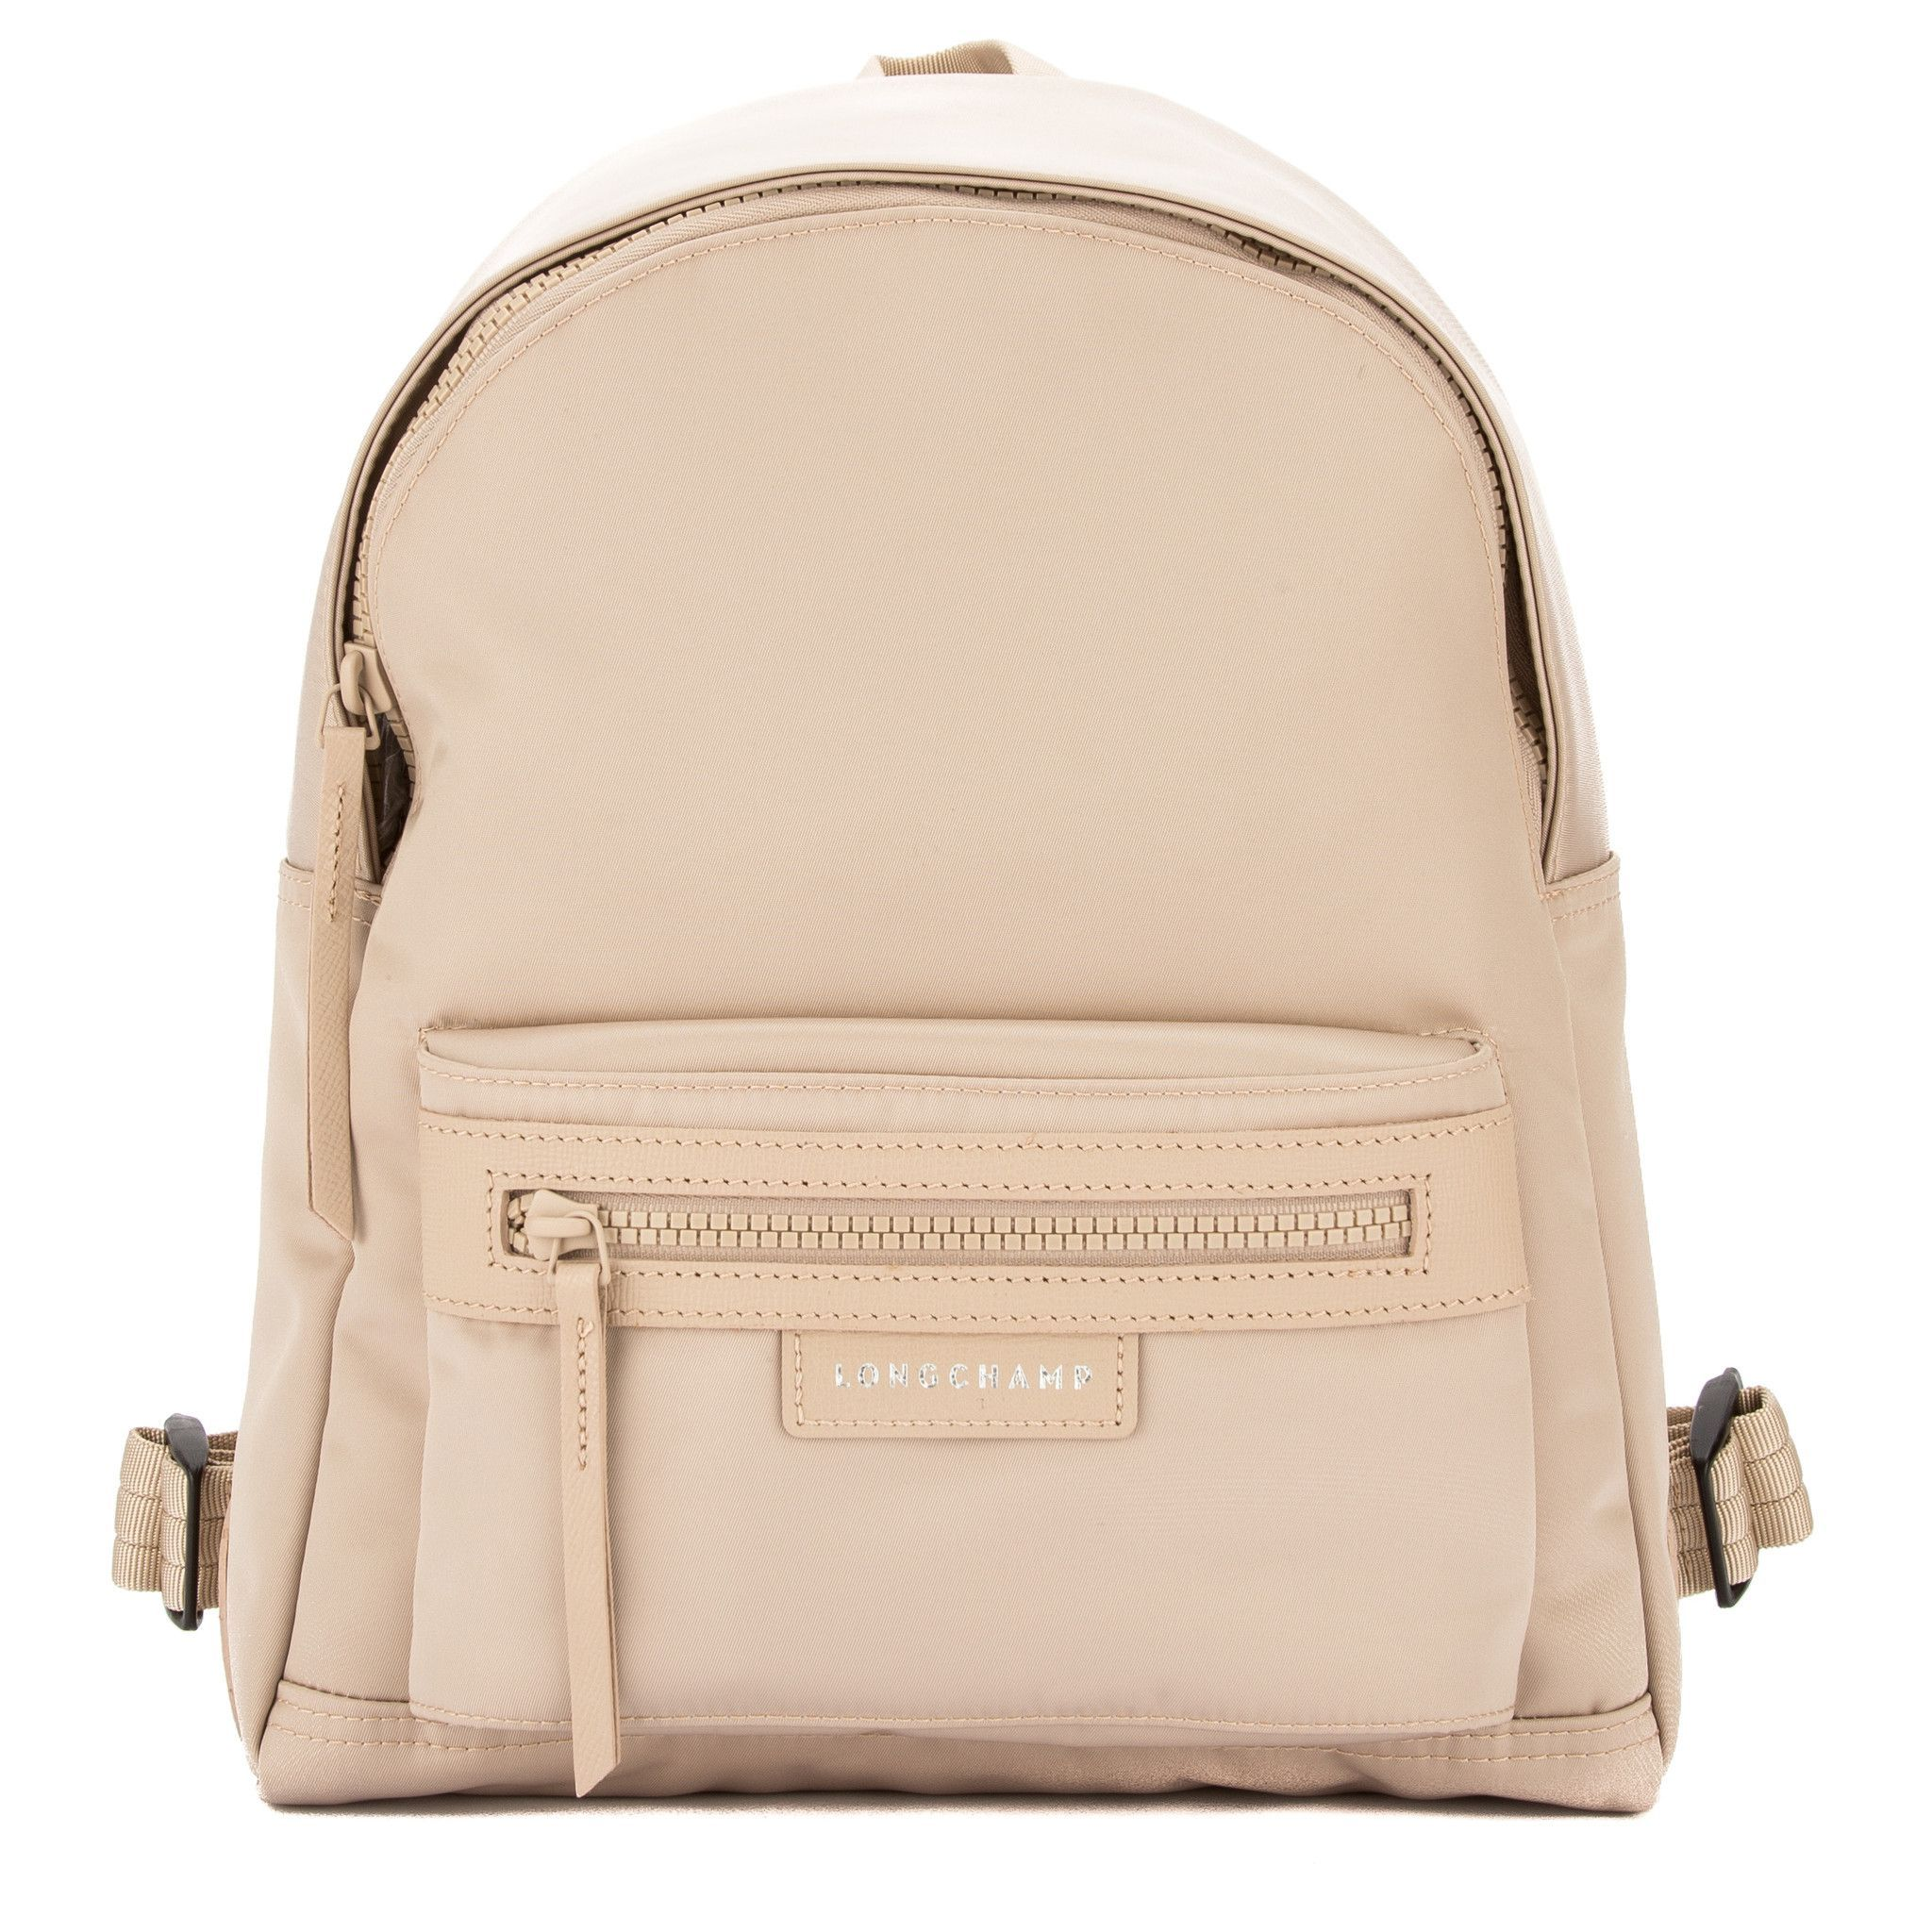 26f2d082f6 Longchamp Chalk Satin Nylon Canvas Le Pliage Neo S Backpack (New with Tags)